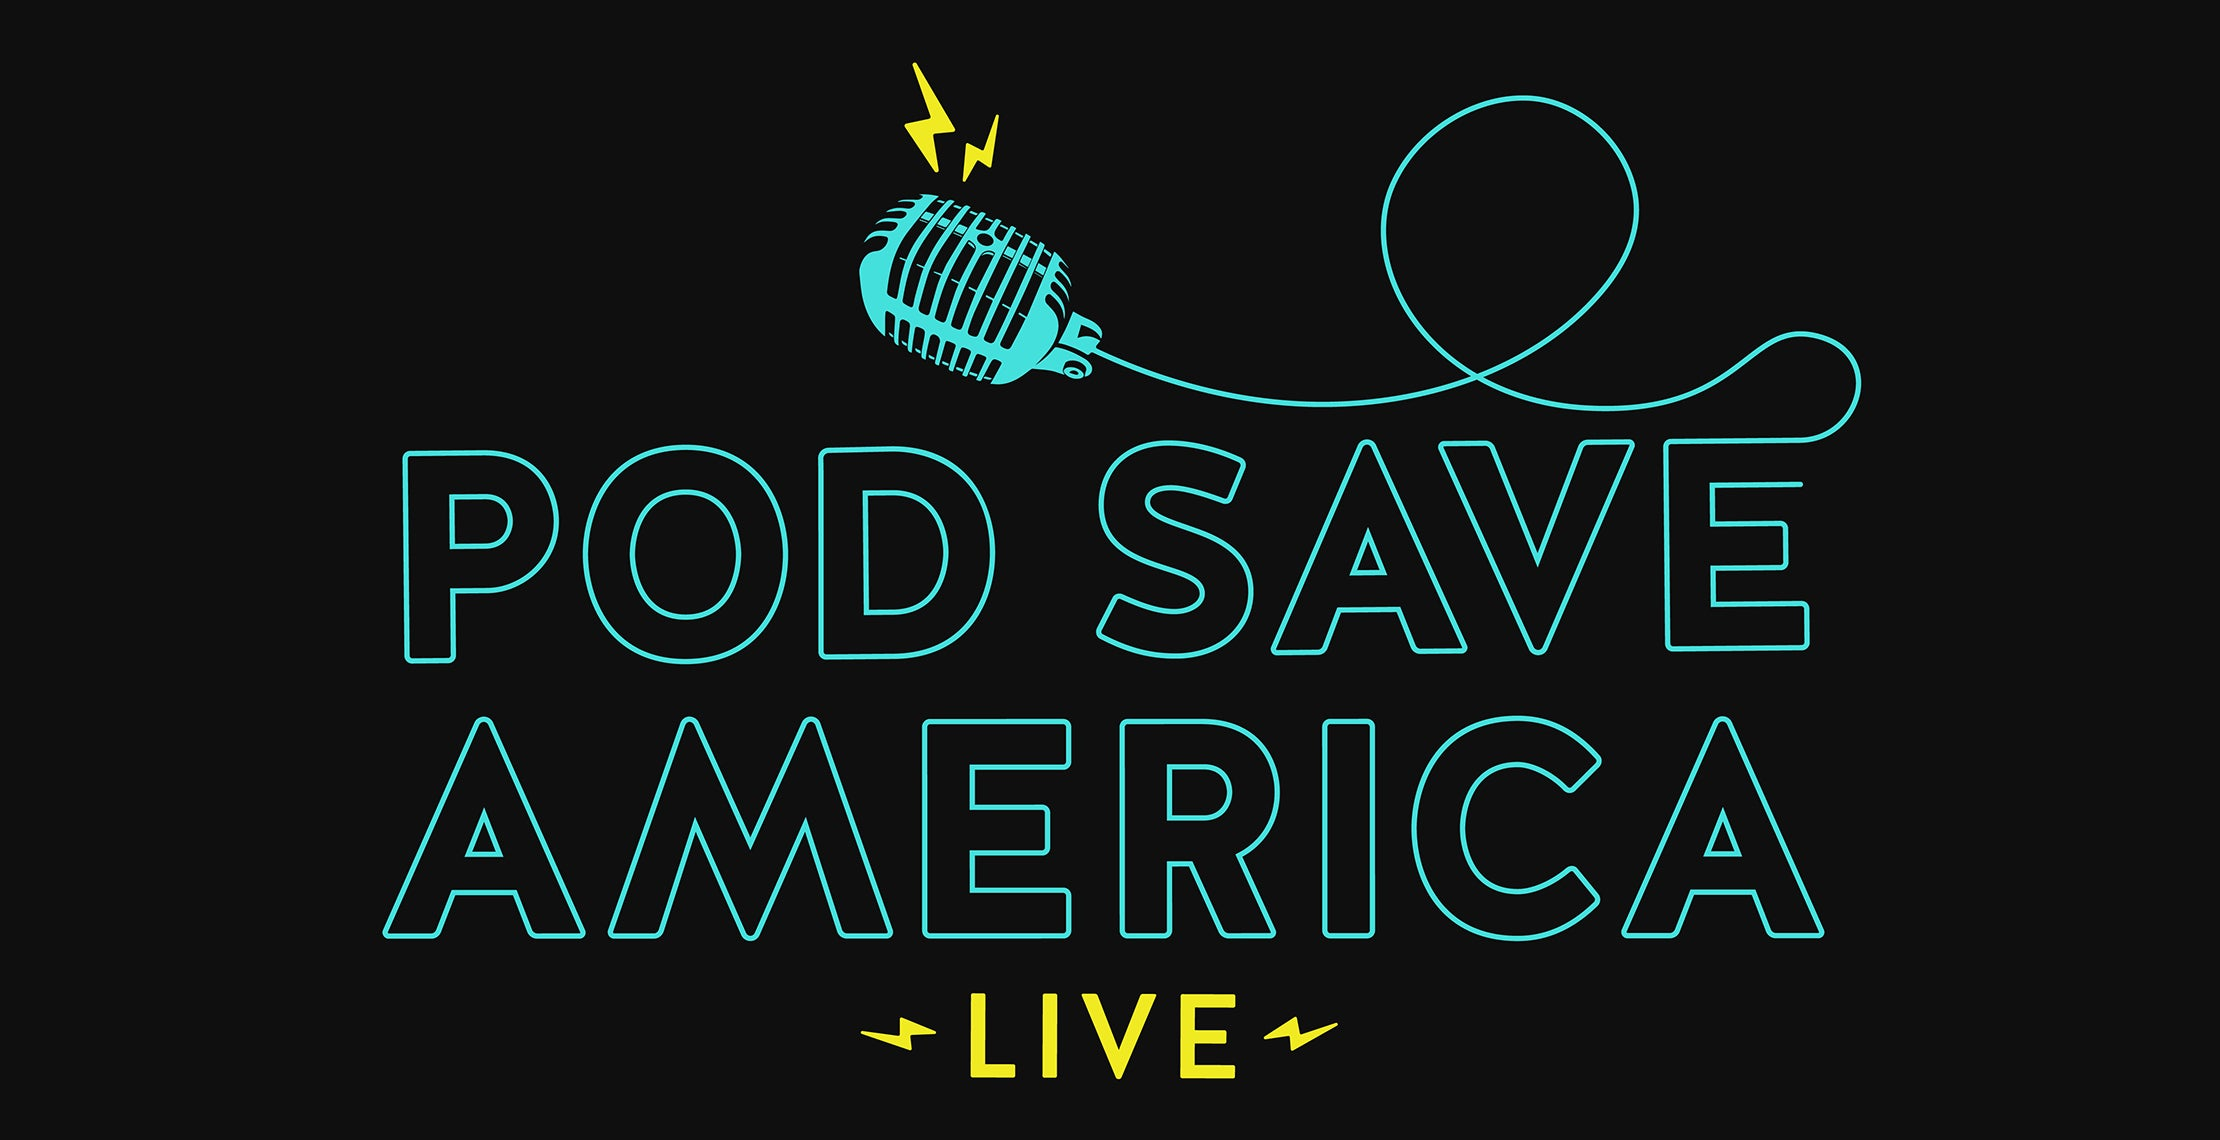 CANCELLED - POD SAVE AMERICA: LIVE